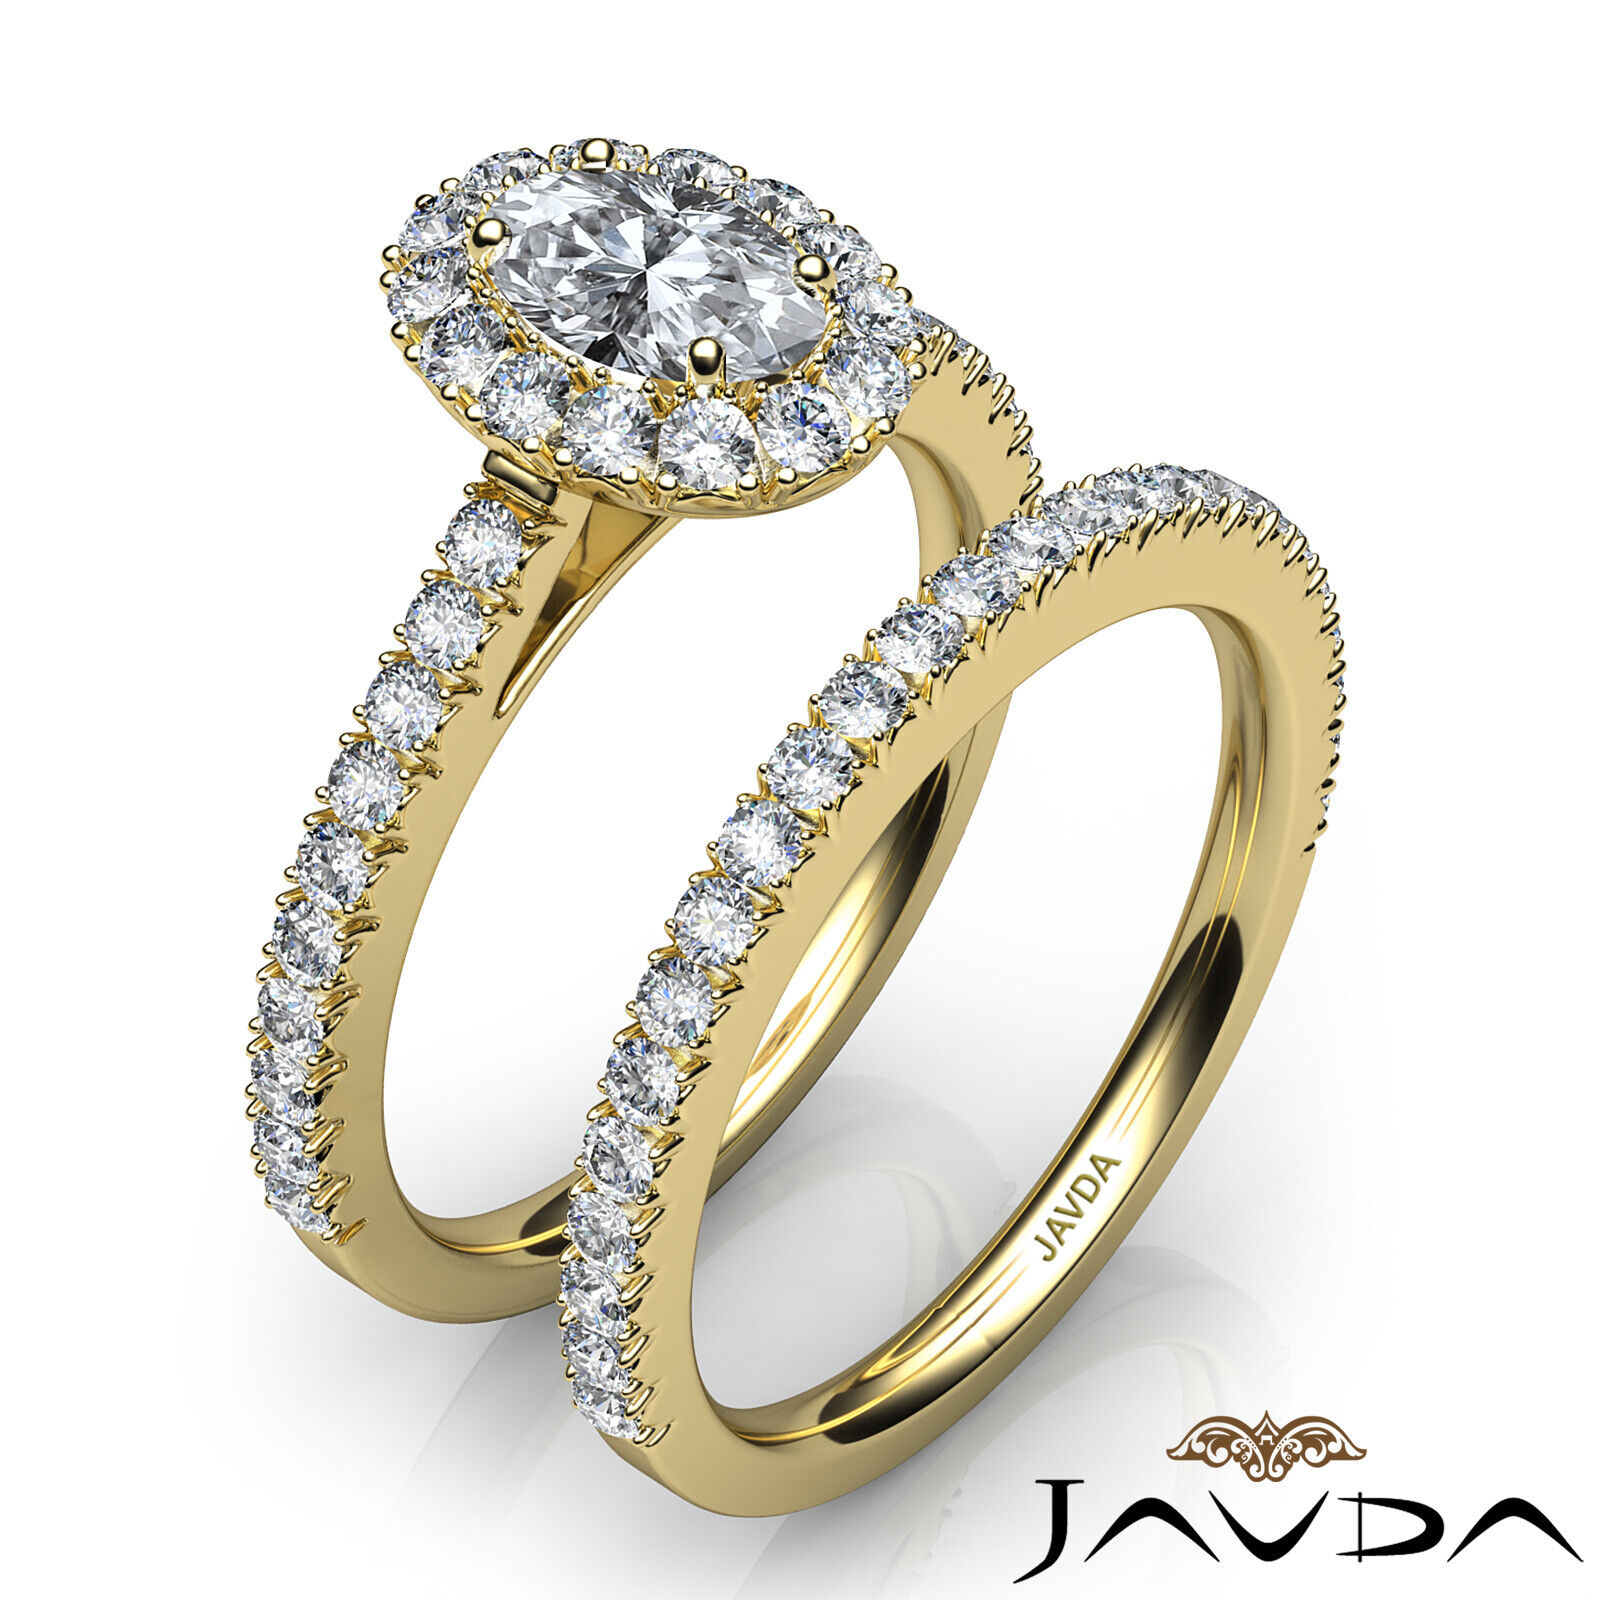 2.21ctw Halo Bridal French Pave Oval Diamond Engagement Ring GIA F-VVS2 W Gold 10